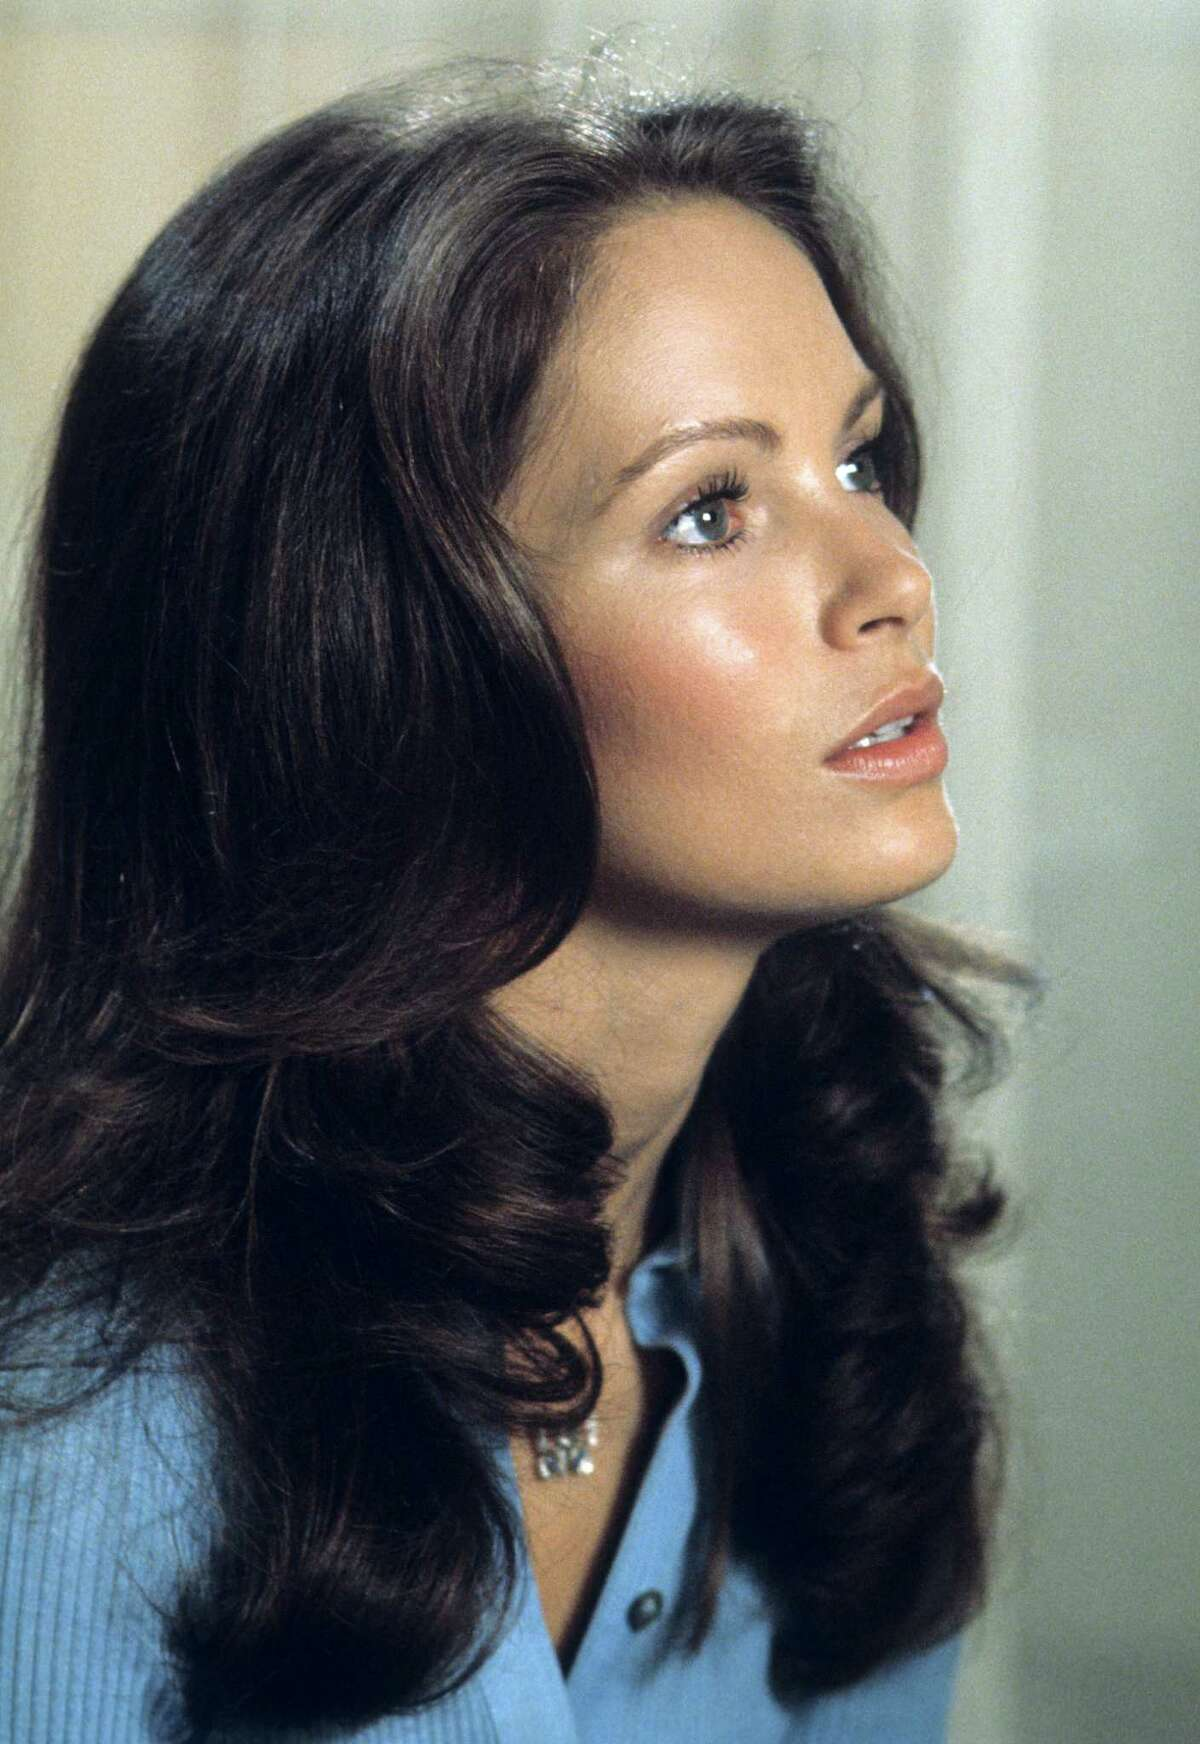 Actress Jaclyn Smith, born in Houston on Oct. 26, 1945, shot to stardom as private eye Kelly Garrett on the '70s TV series